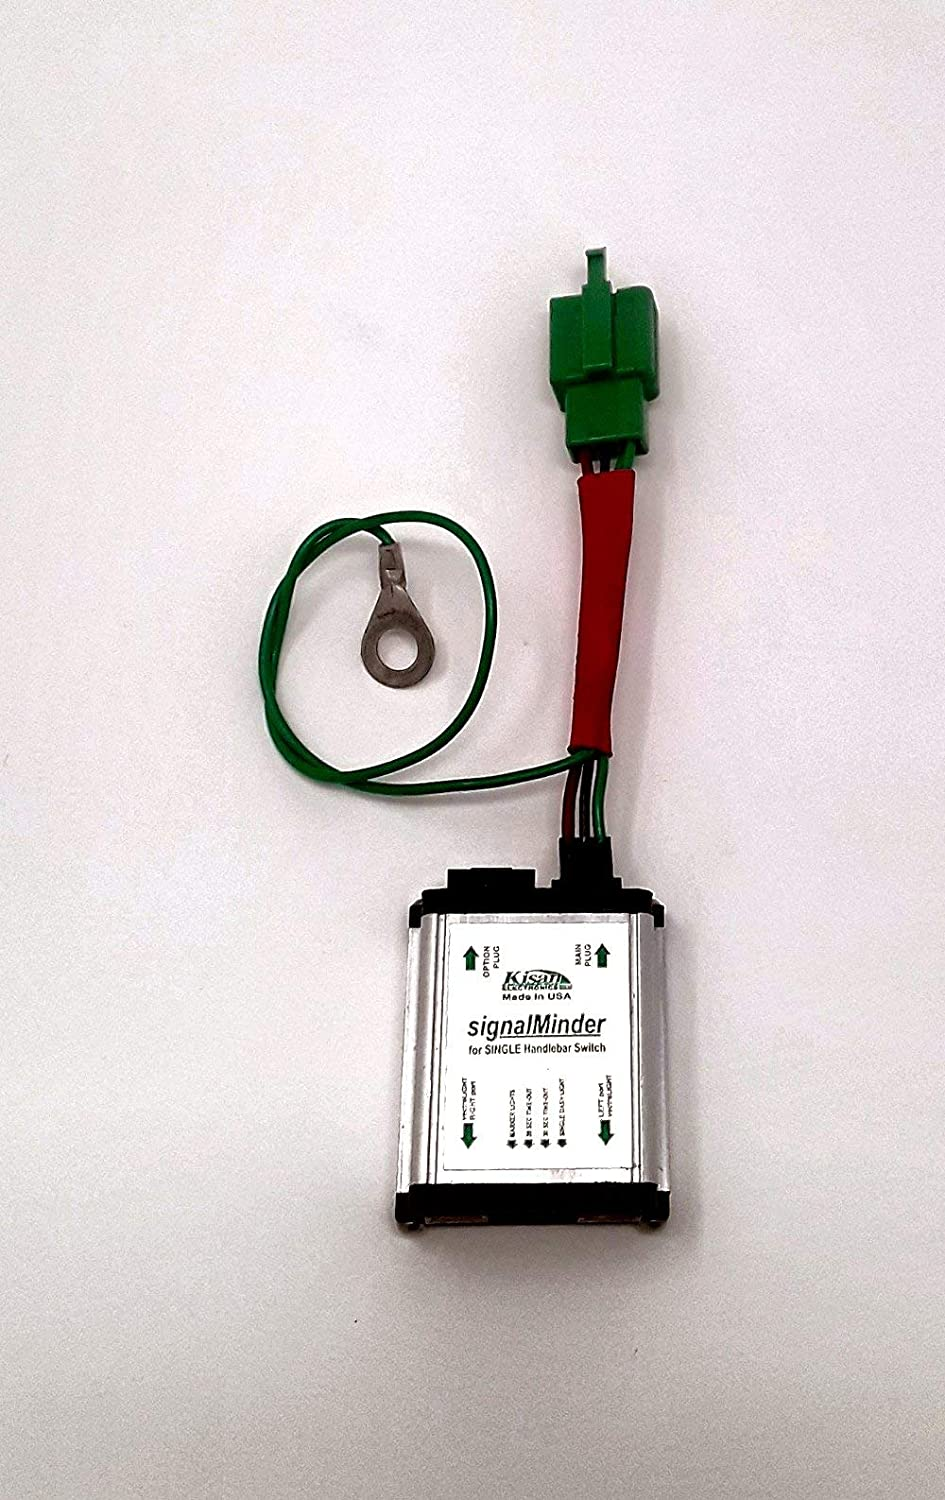 Turn Signal Canceling Motorcycle Relay SM 400   Programmable 40 Way Flash,  Running & Escort Modes   signalMinder by Kisan for BMW K bikes and earlier  ...